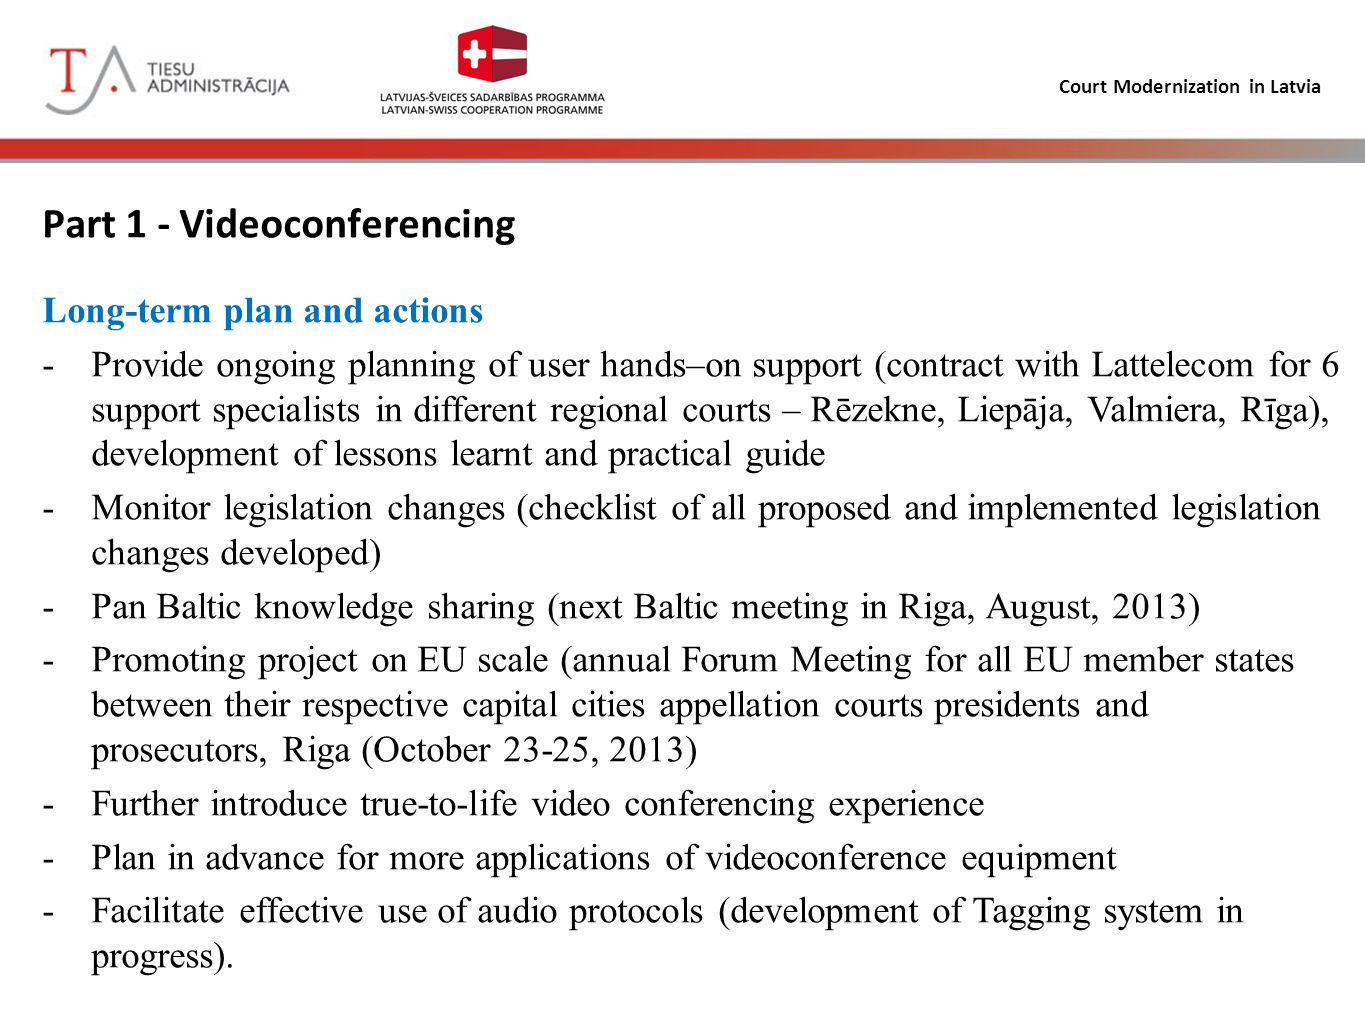 Court Modernization in Latvia Part 1 - Videoconferencing Long-term plan and actions -Provide ongoing planning of user hands–on support (contract with Lattelecom for 6 support specialists in different regional courts – Rēzekne, Liepāja, Valmiera, Rīga), development of lessons learnt and practical guide -Monitor legislation changes (checklist of all proposed and implemented legislation changes developed) -Pan Baltic knowledge sharing (next Baltic meeting in Riga, August, 2013) -Promoting project on EU scale (annual Forum Meeting for all EU member states between their respective capital cities appellation courts presidents and prosecutors, Riga (October 23-25, 2013) -Further introduce true-to-life video conferencing experience -Plan in advance for more applications of videoconference equipment -Facilitate effective use of audio protocols (development of Tagging system in progress).